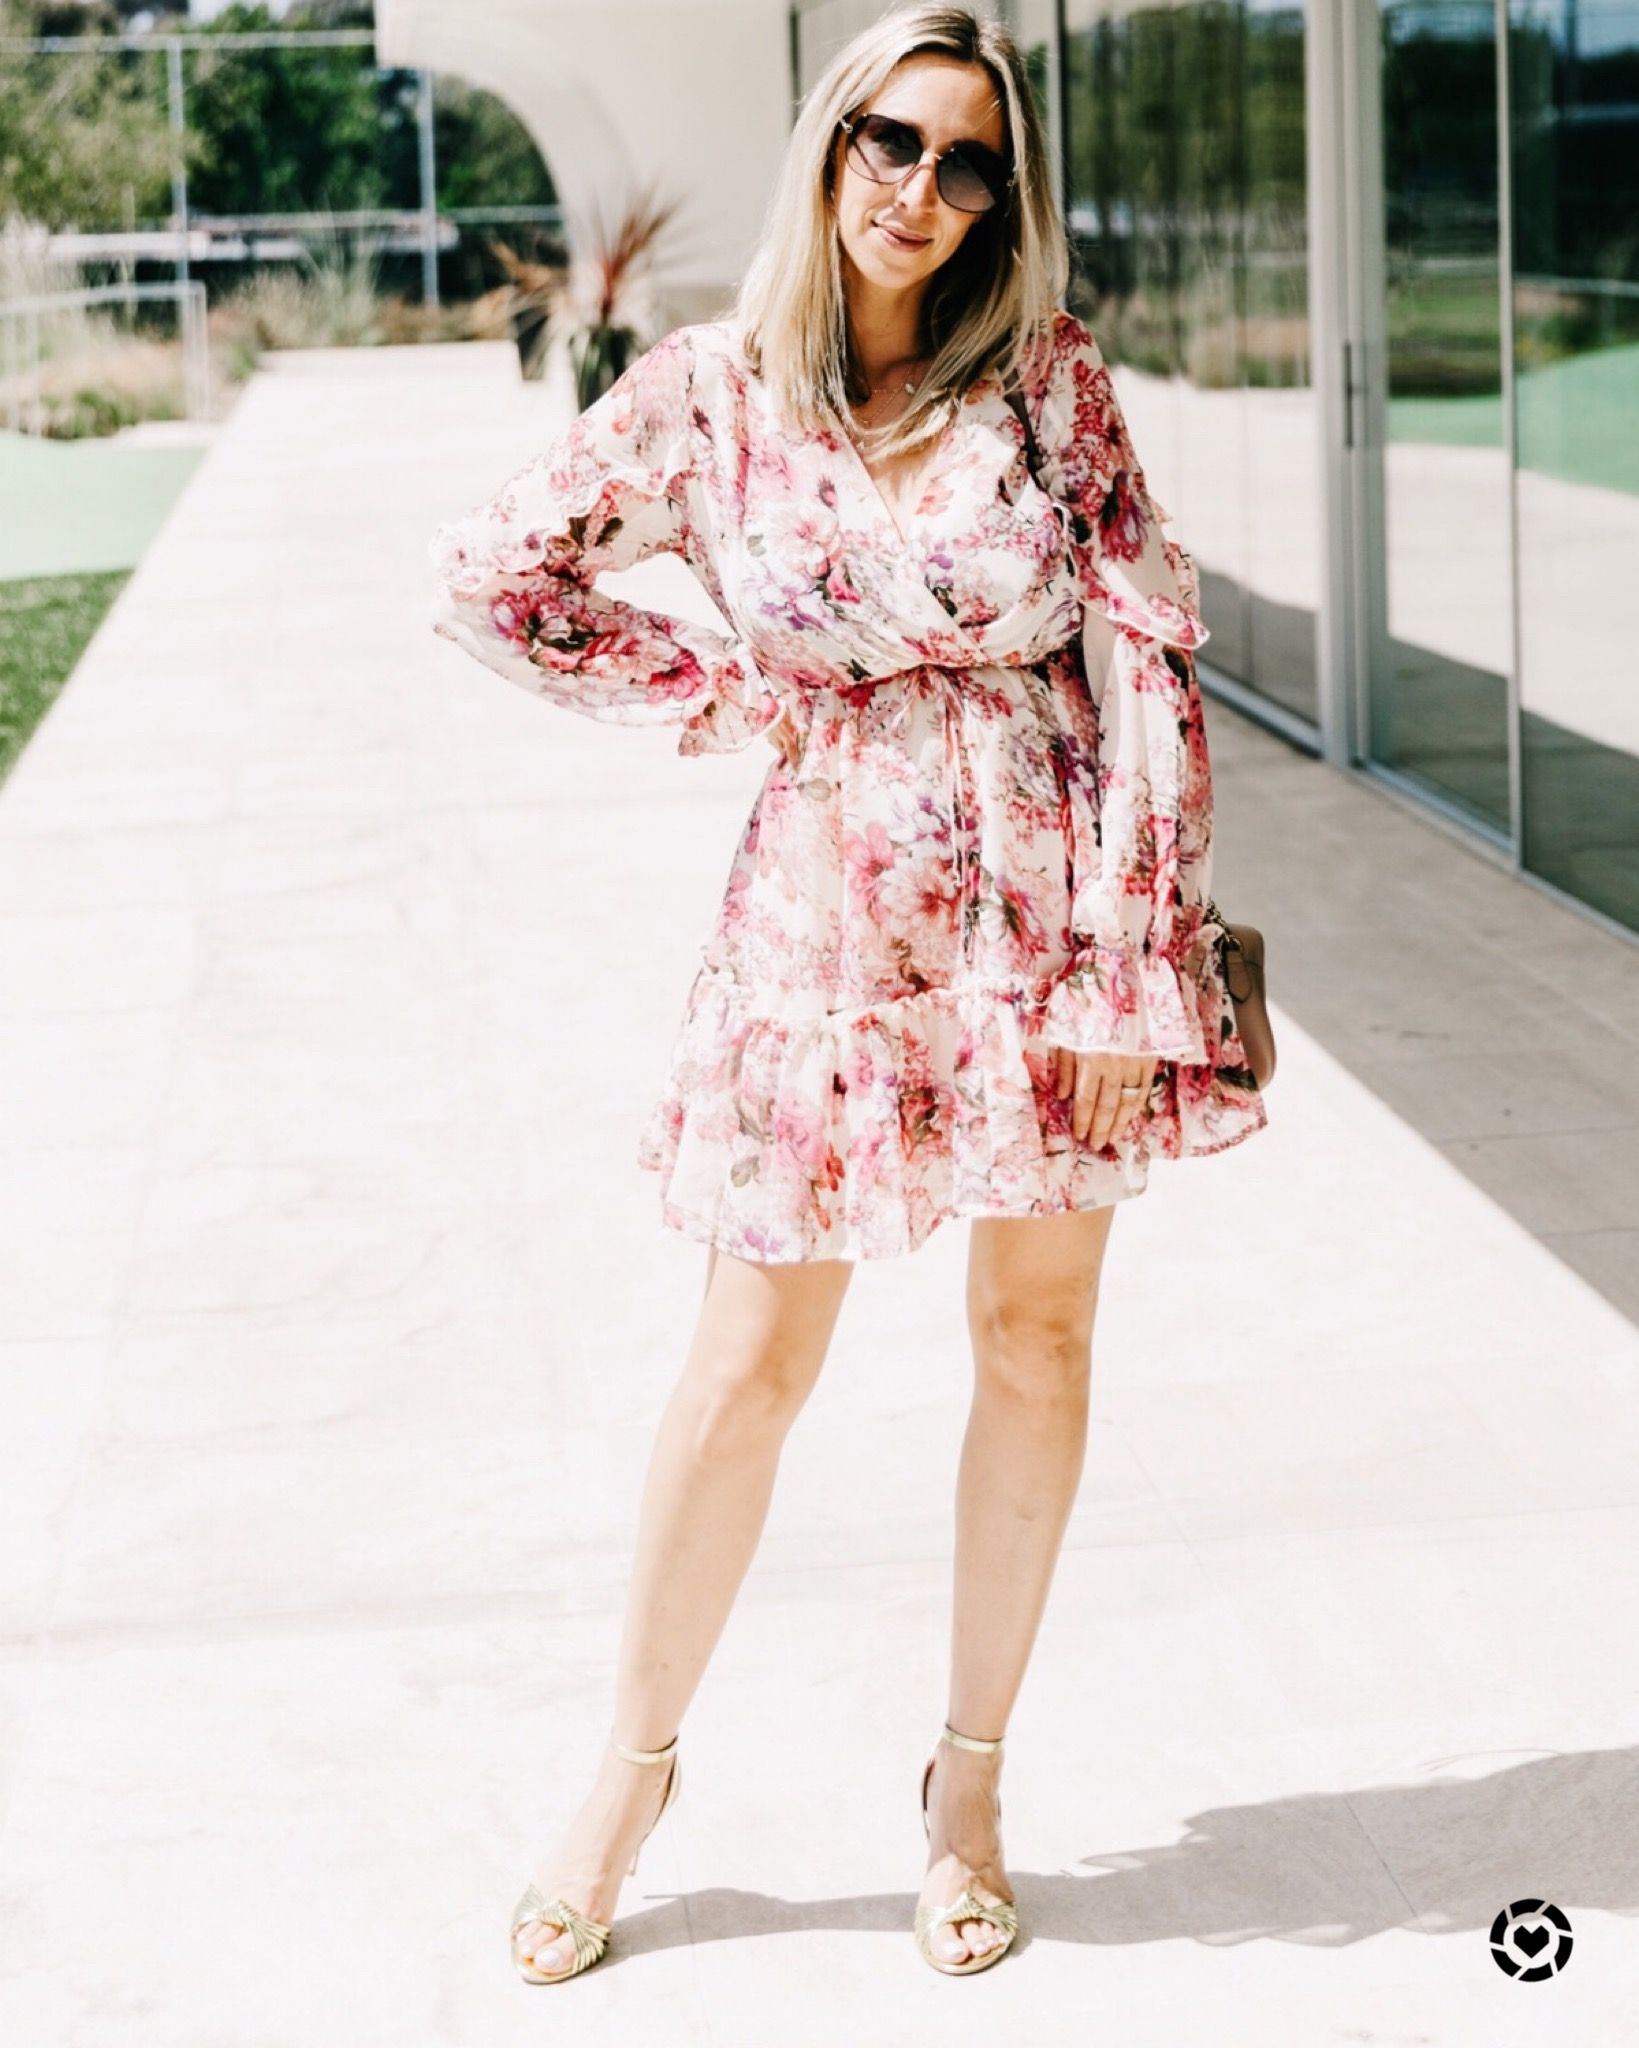 Pretty in pink this floral faux wrap dress is under $25 and perfect for date night or wedding guest outfit #valentinesdayoutfits #vdayoutfits #weddingguestoutfit #weddingguest